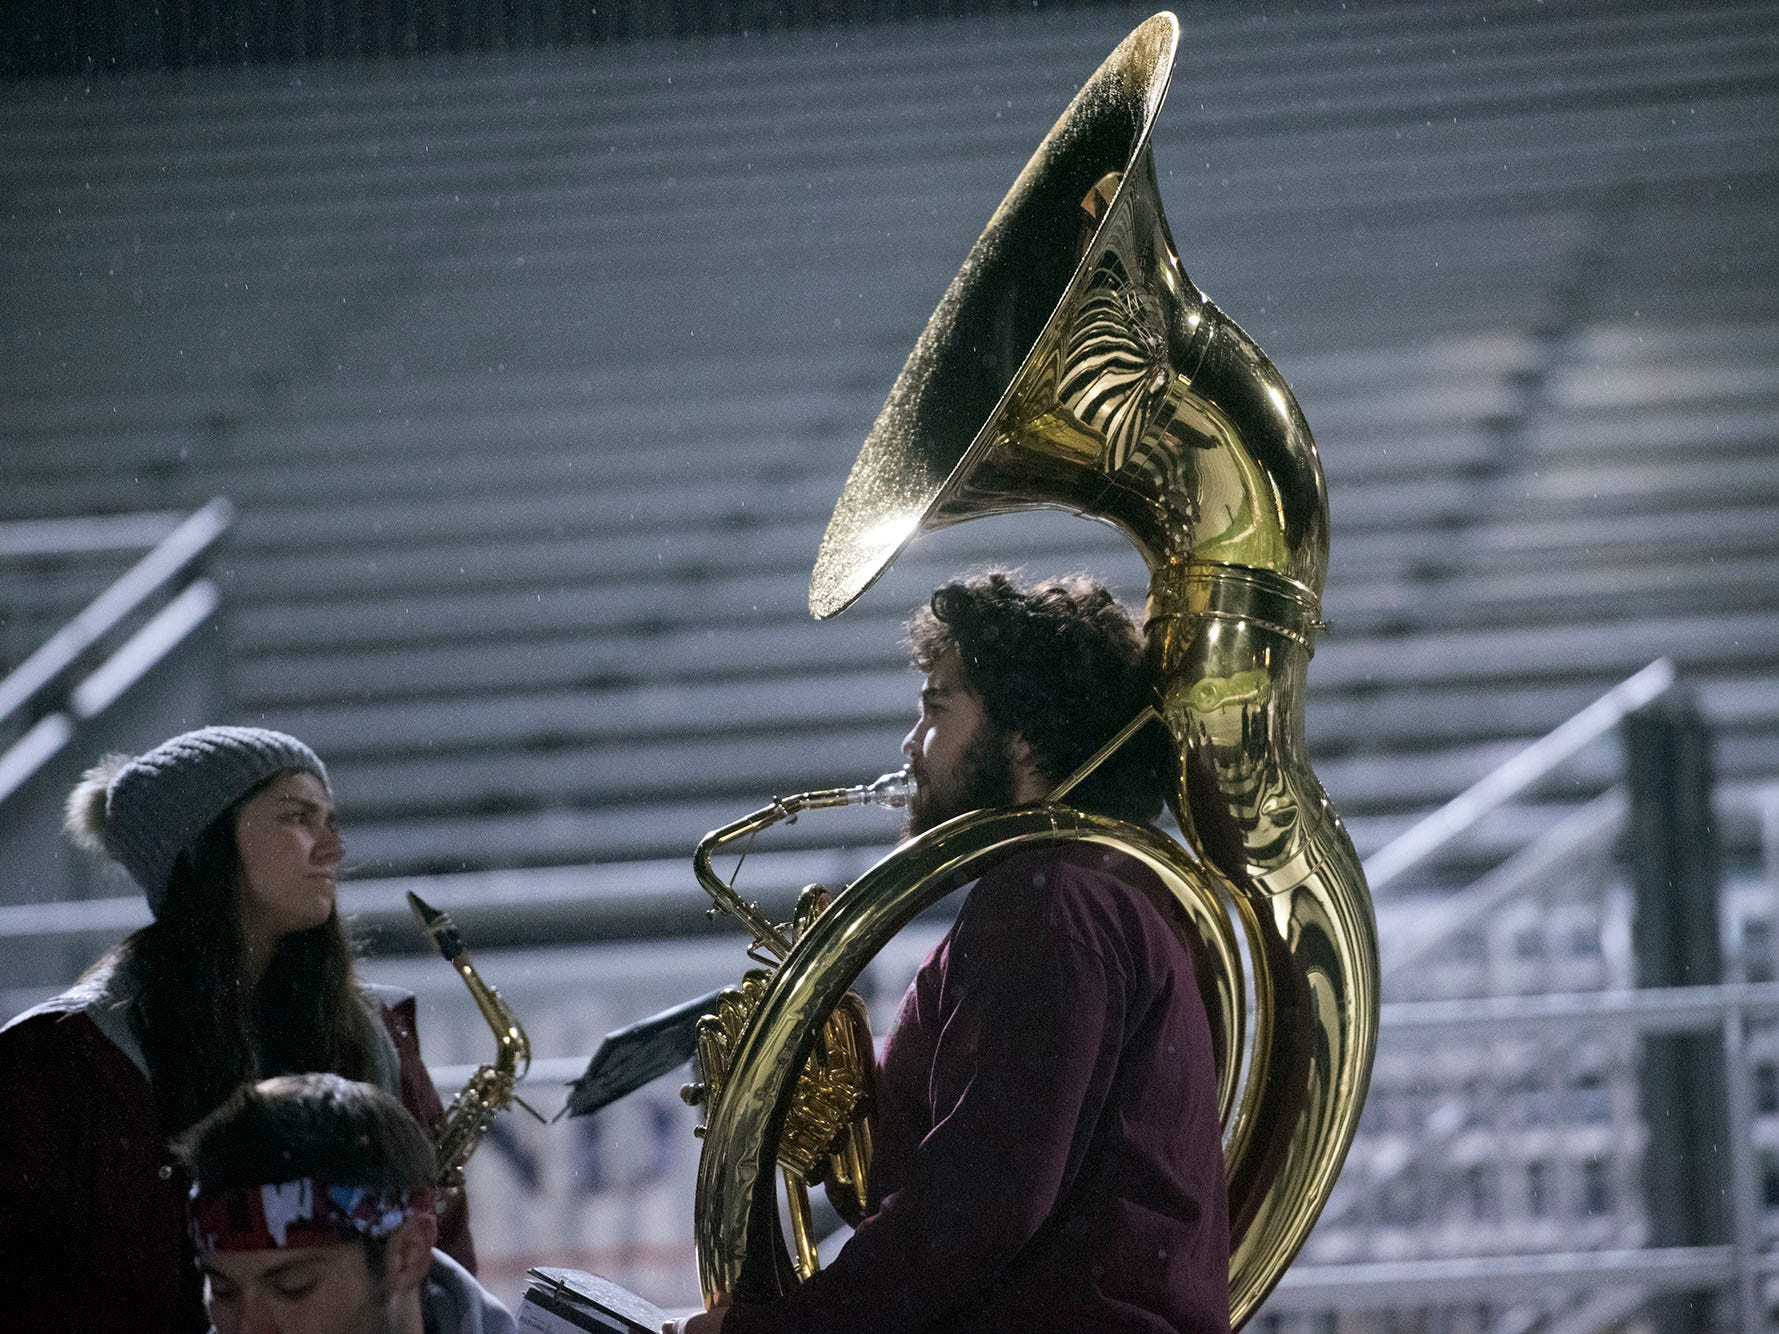 Shippensburg band members tune-up before the game. York High defeated Shippensburg 22-6  in the the quarterfinals of PIAA 5A District 3 football playoffs on Friday, Nov. 9, 2018 at Trojan Stadium.